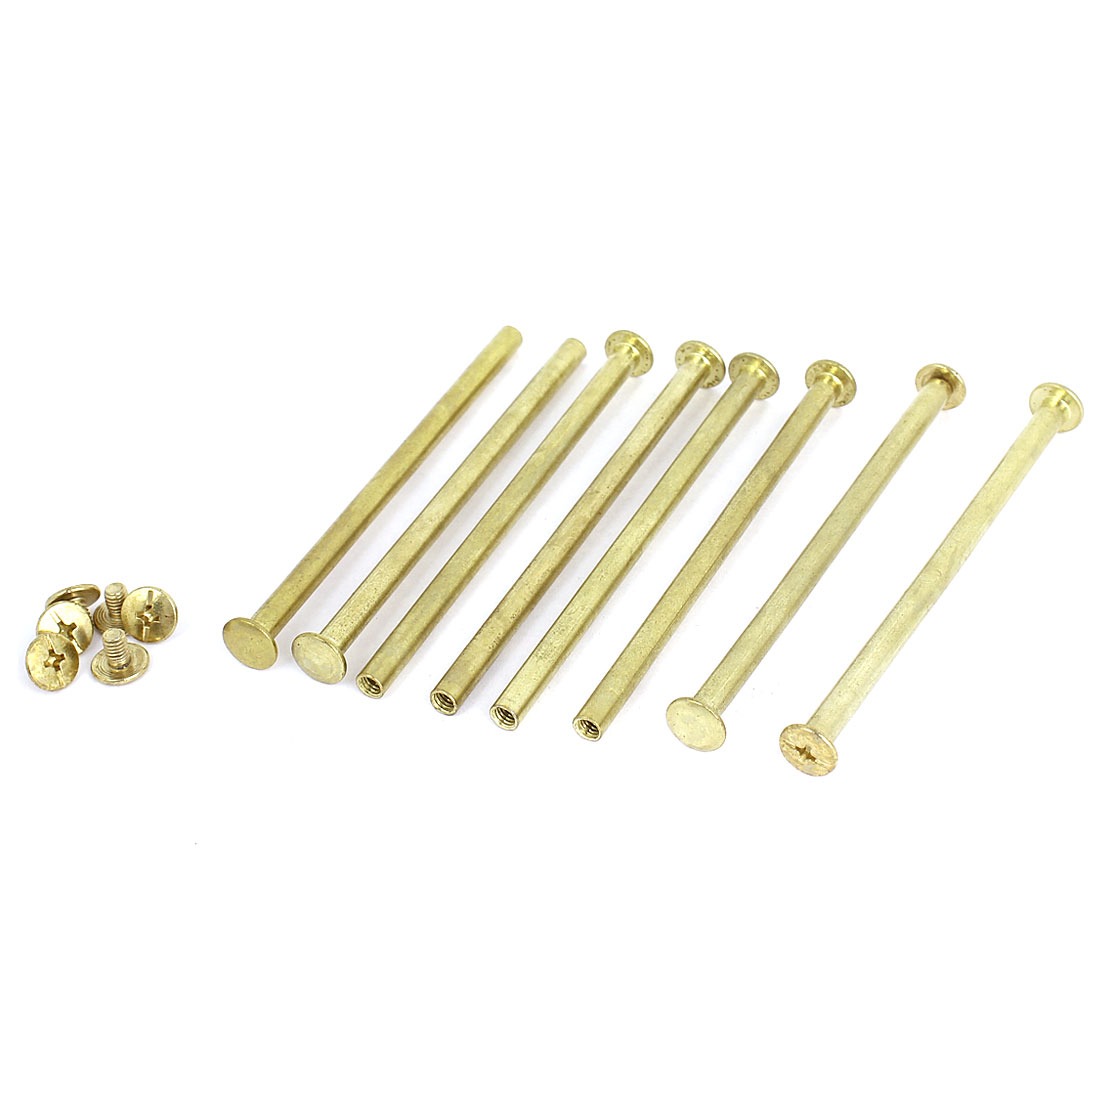 Brass Plated 5x90mm Binding Chicago Screw Post 8pcs for Leather Scrapbook